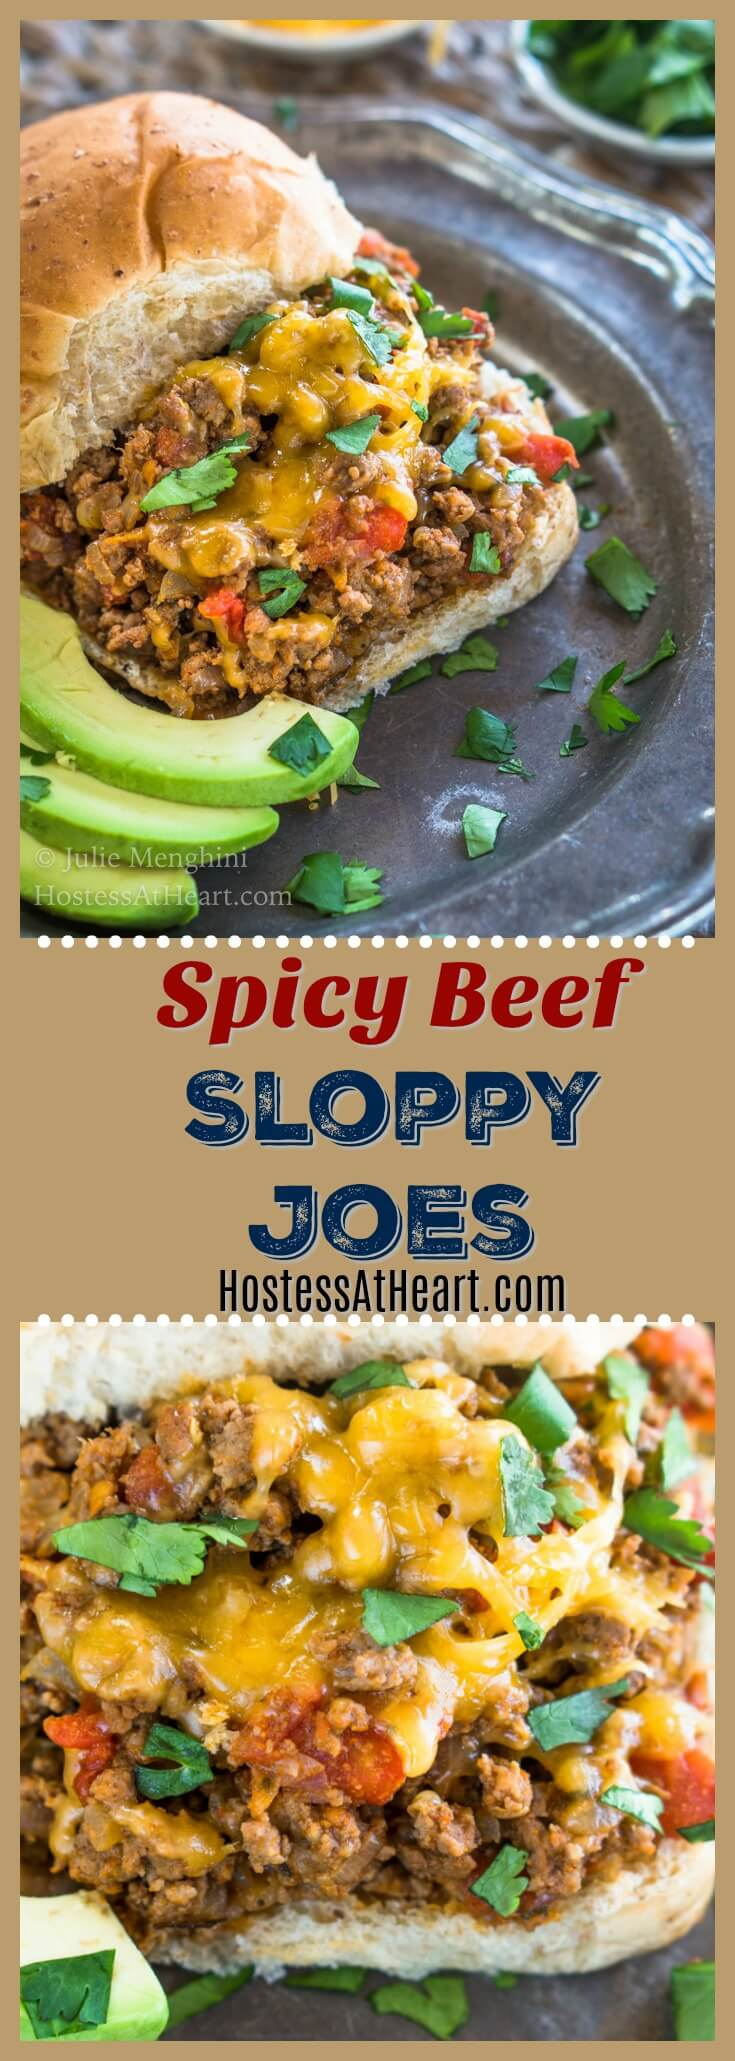 These Spicy Beef Sloppy Joes can be made as spicy as you like. Be sure to grab a fork because you're going to want to pile on this filling. #MexicanFood #TacoTuesday #sloppyjoes #GroundBeef #EasyDinner |Homemade Sloppy Joes | Best Sloppy Joes | Easy Sloppy Joe Recipe